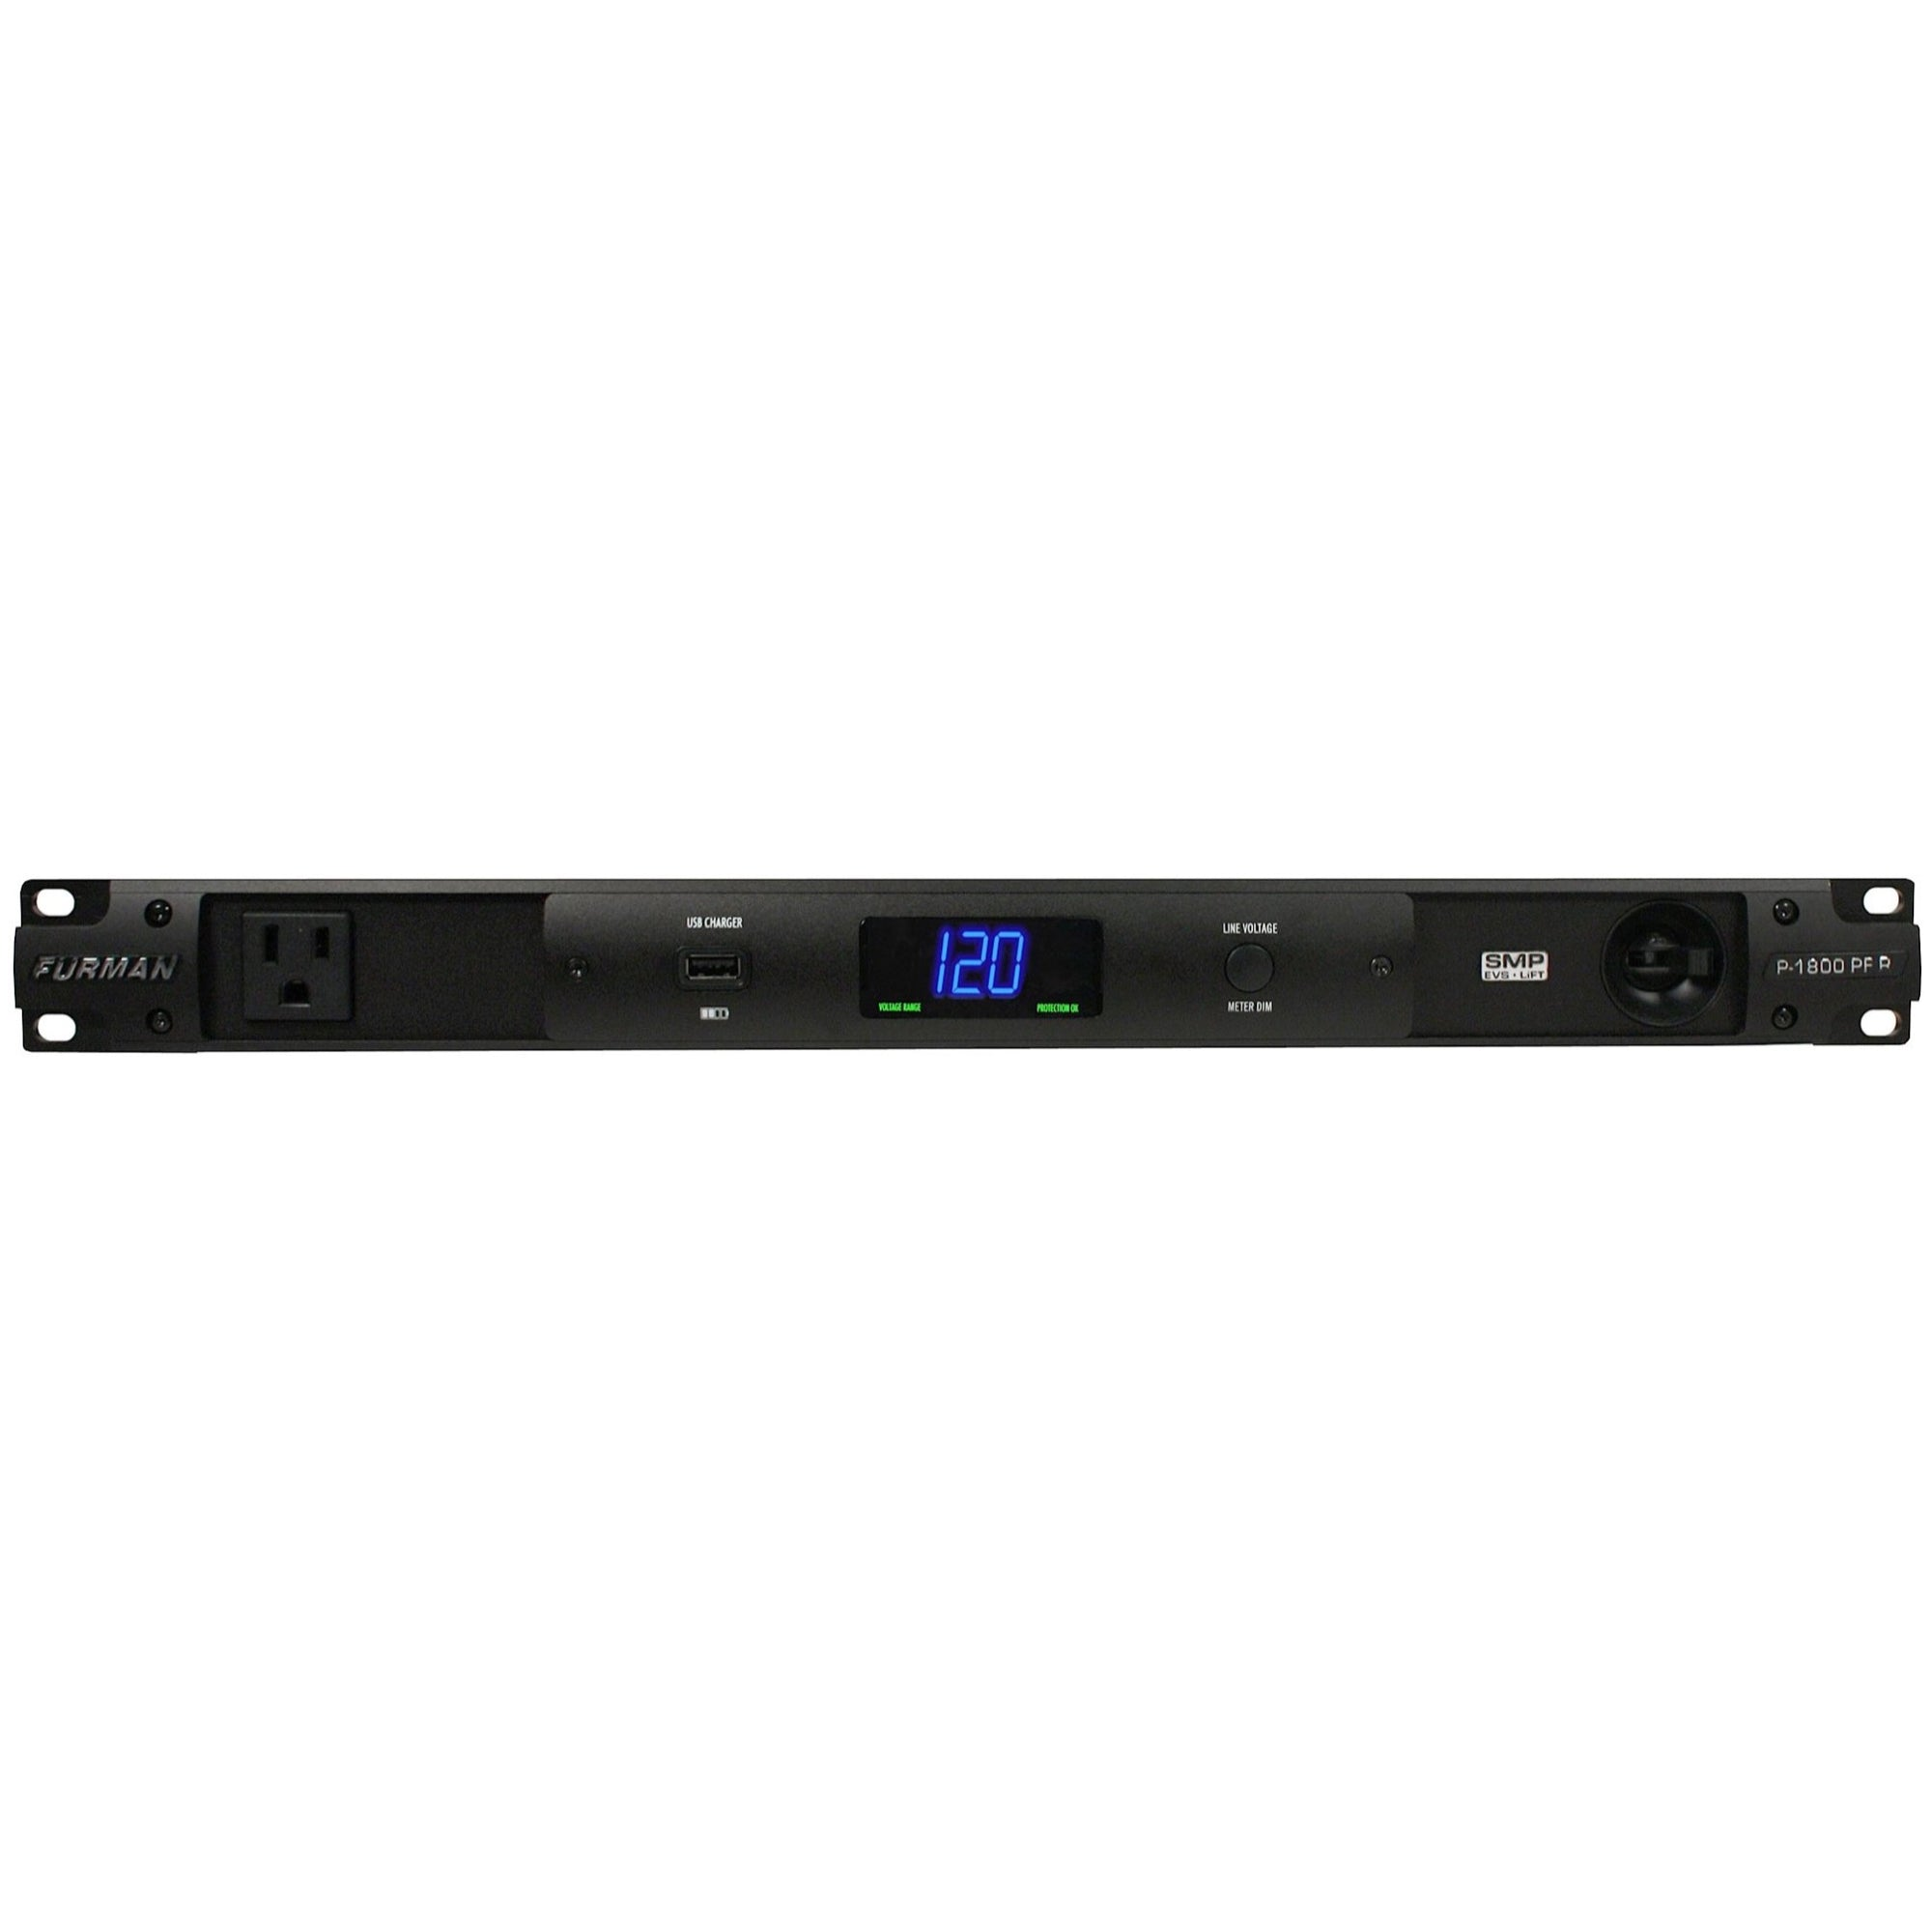 Furman P1800 PFR Power Factor Power Conditioner